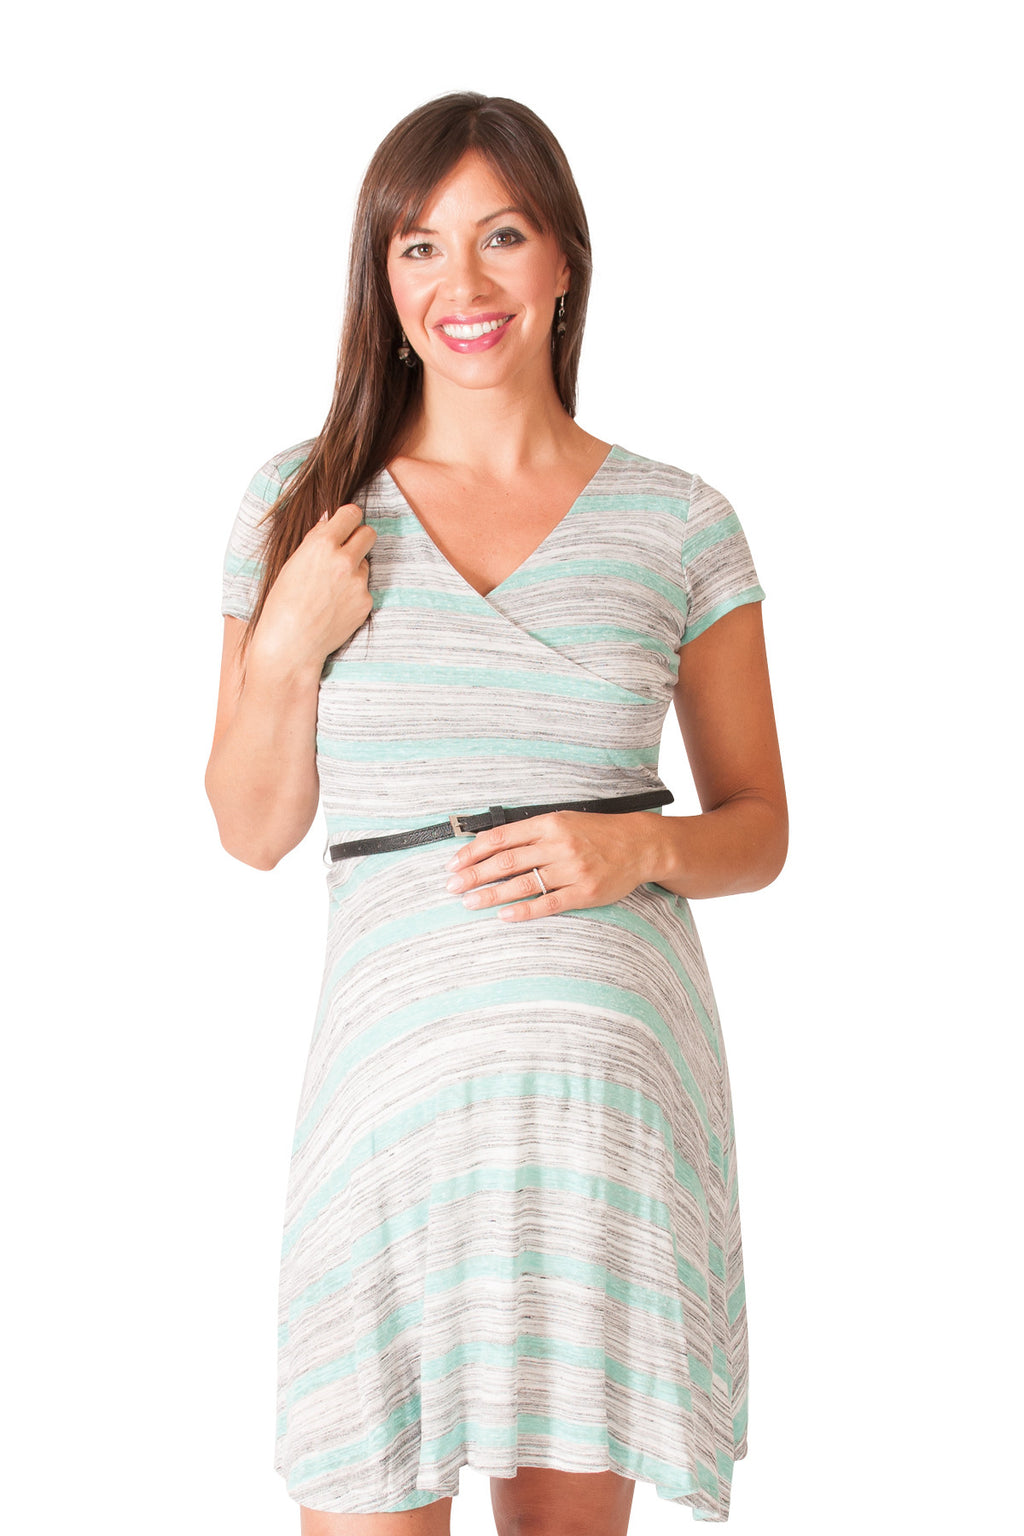 Sweet Simplicity Maternity Surplice Dress - Mommylicious